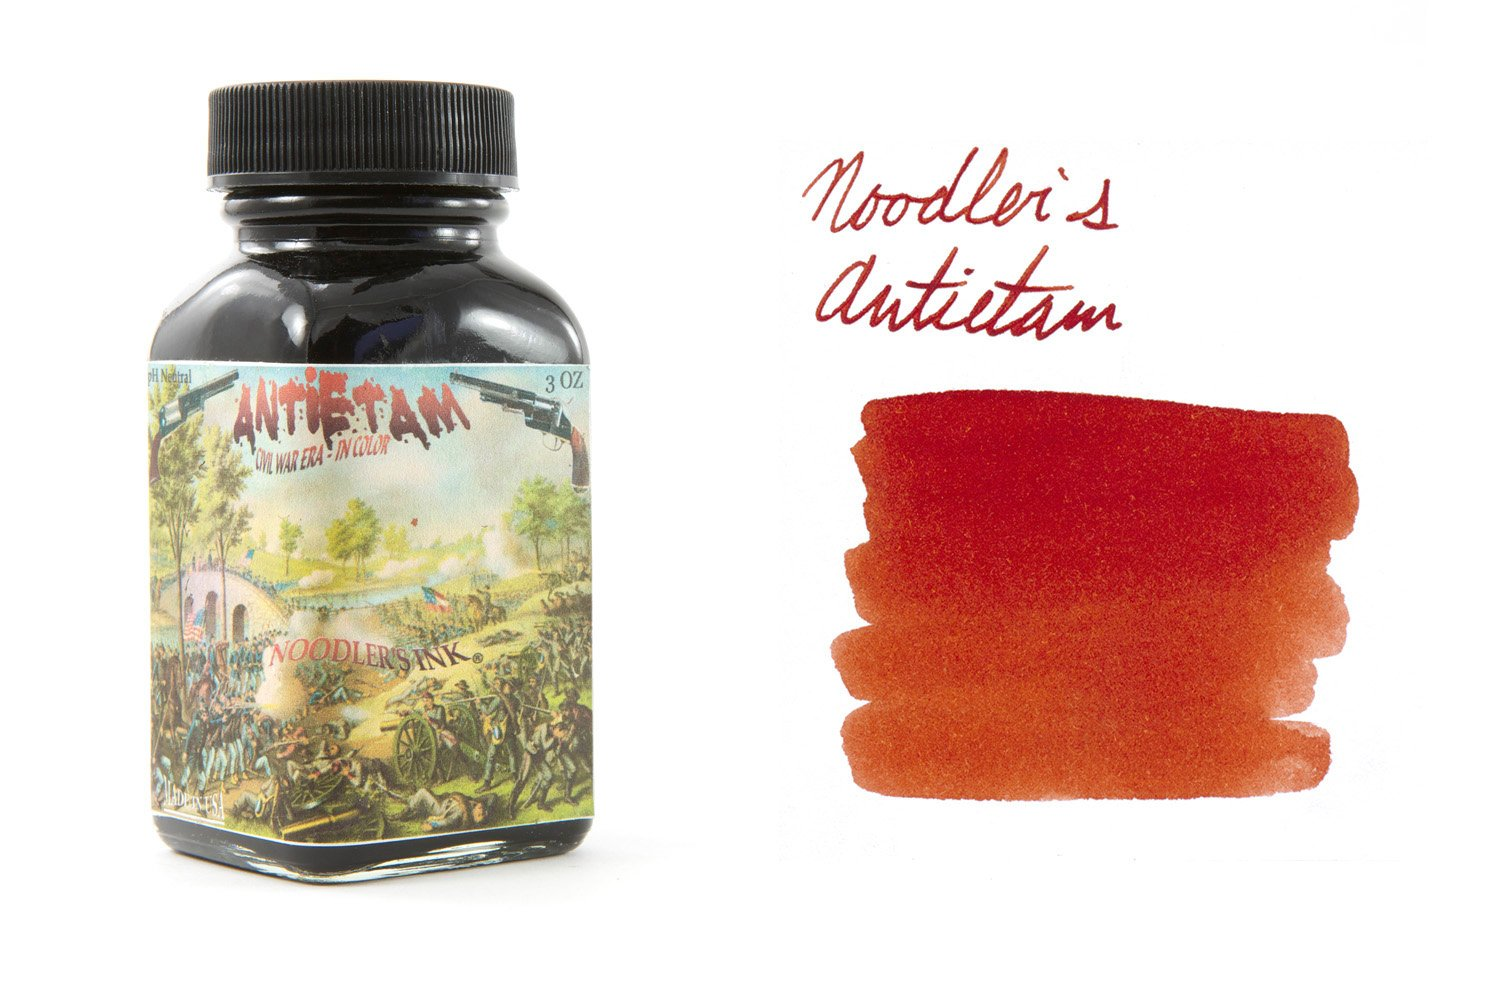 Noodler's Antietam - 3oz Bottled Ink